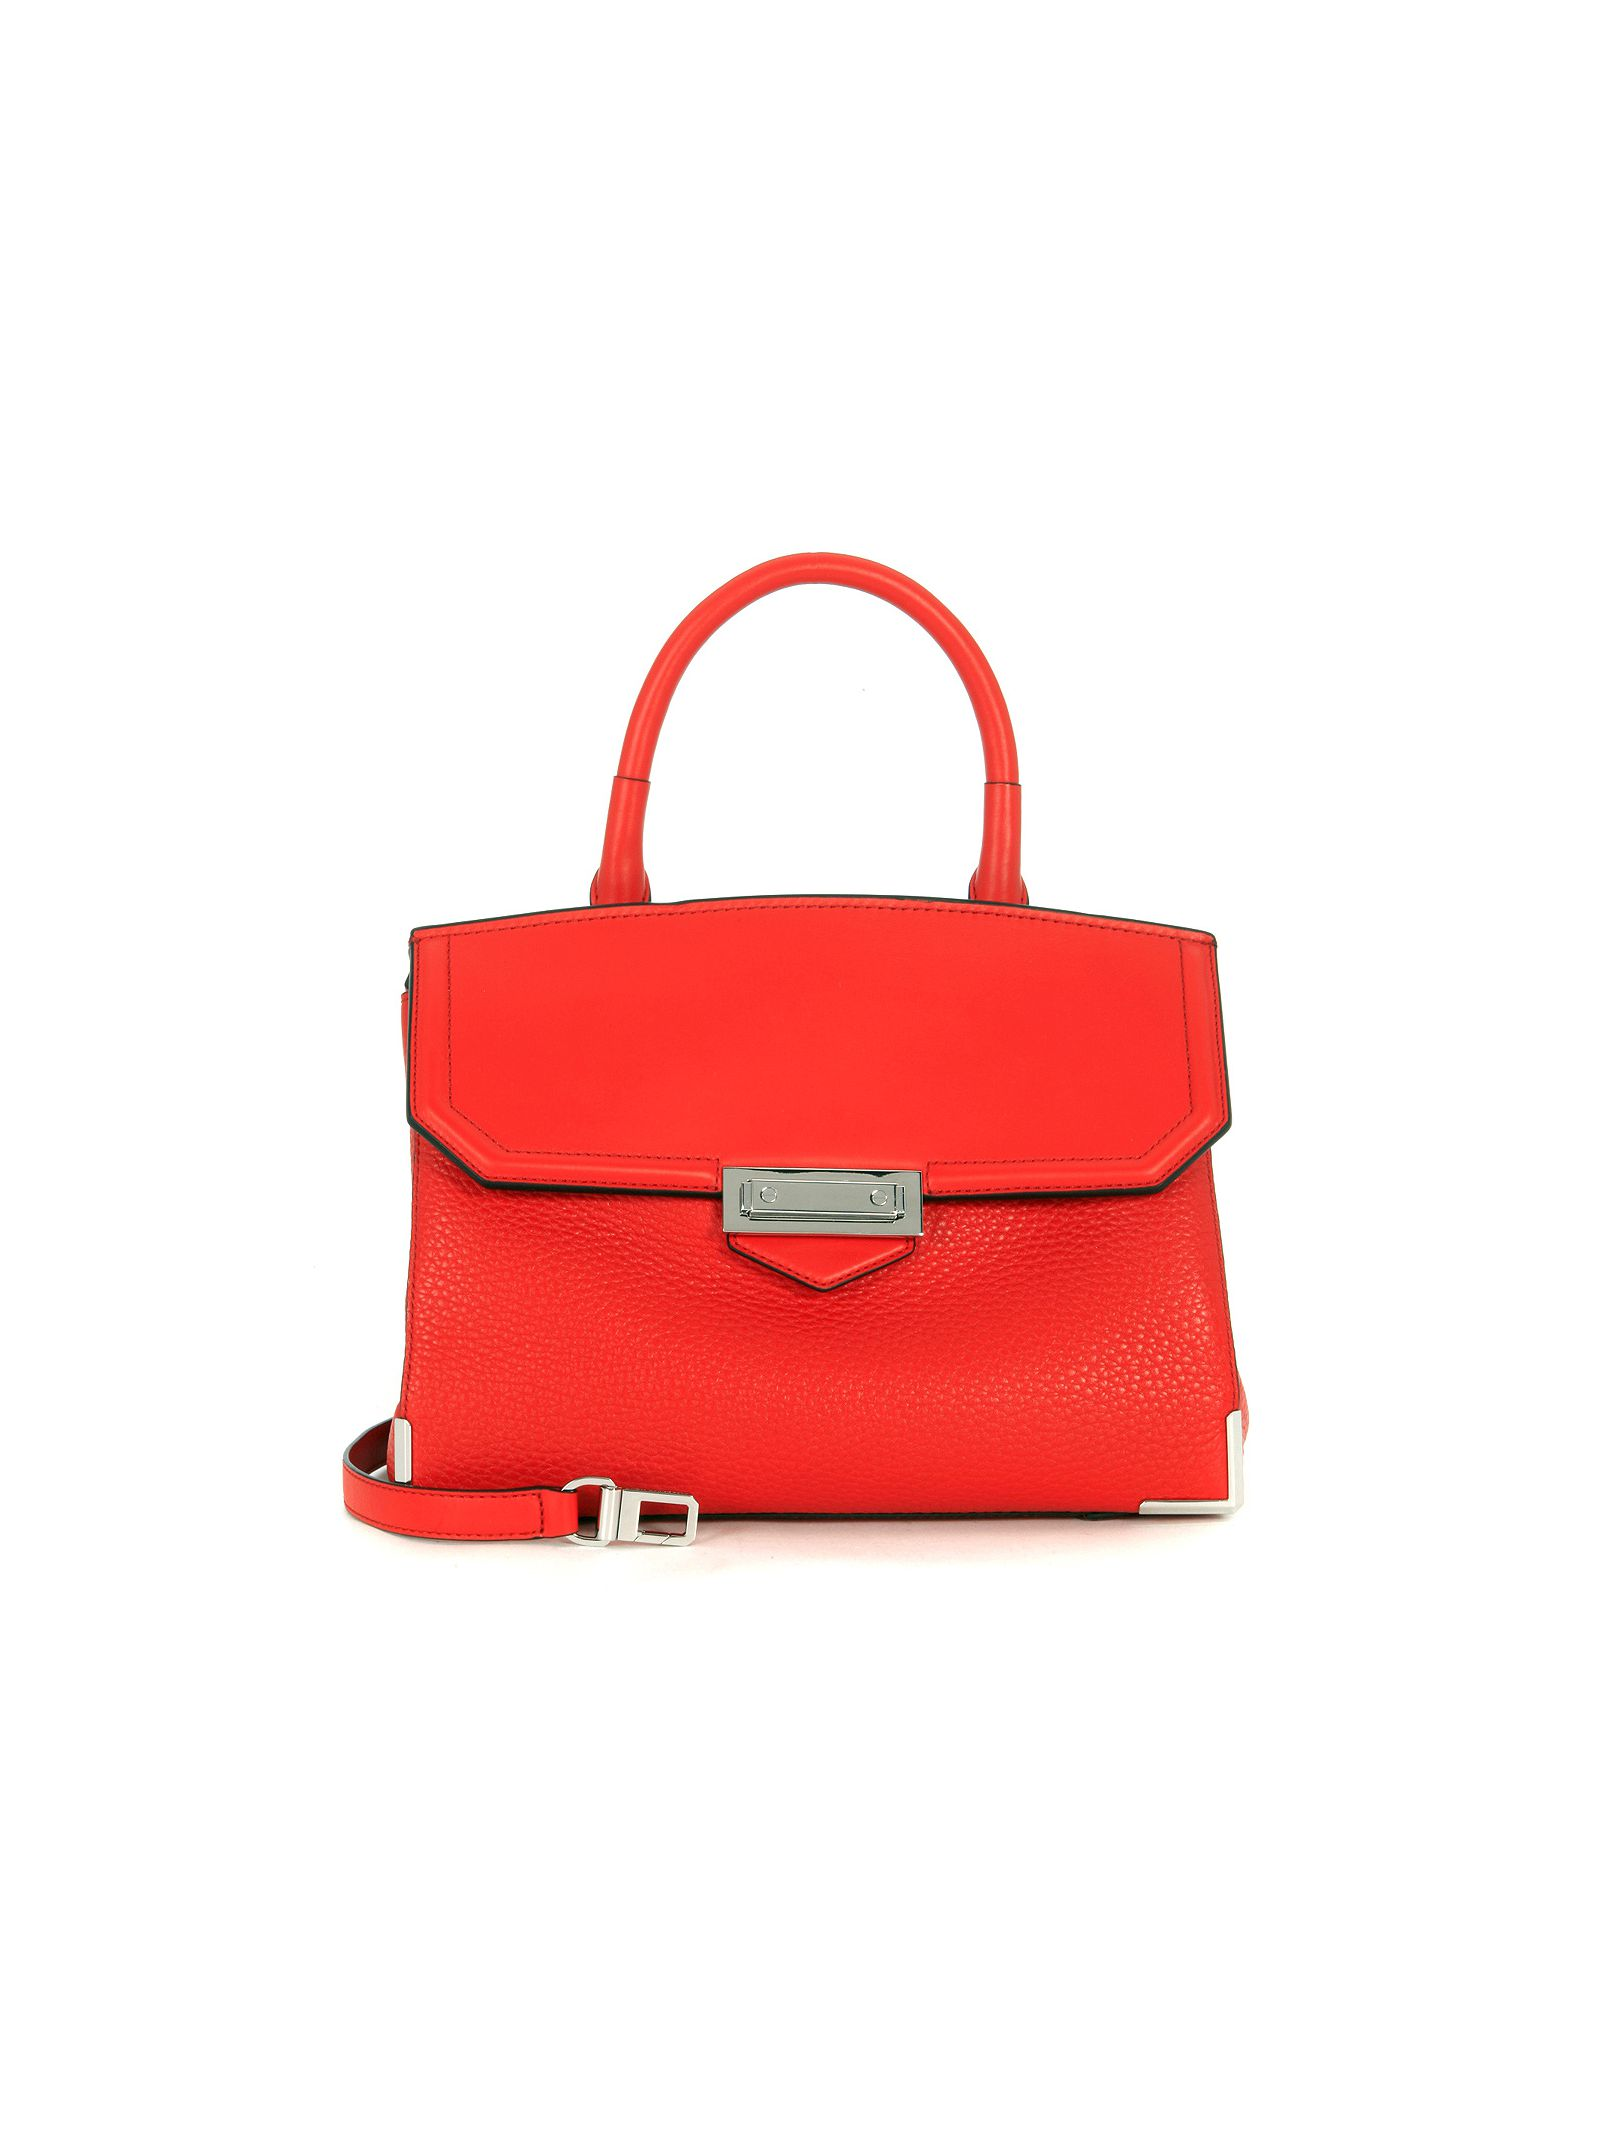 Alexander Wang Marion Large Red Leather Handbag